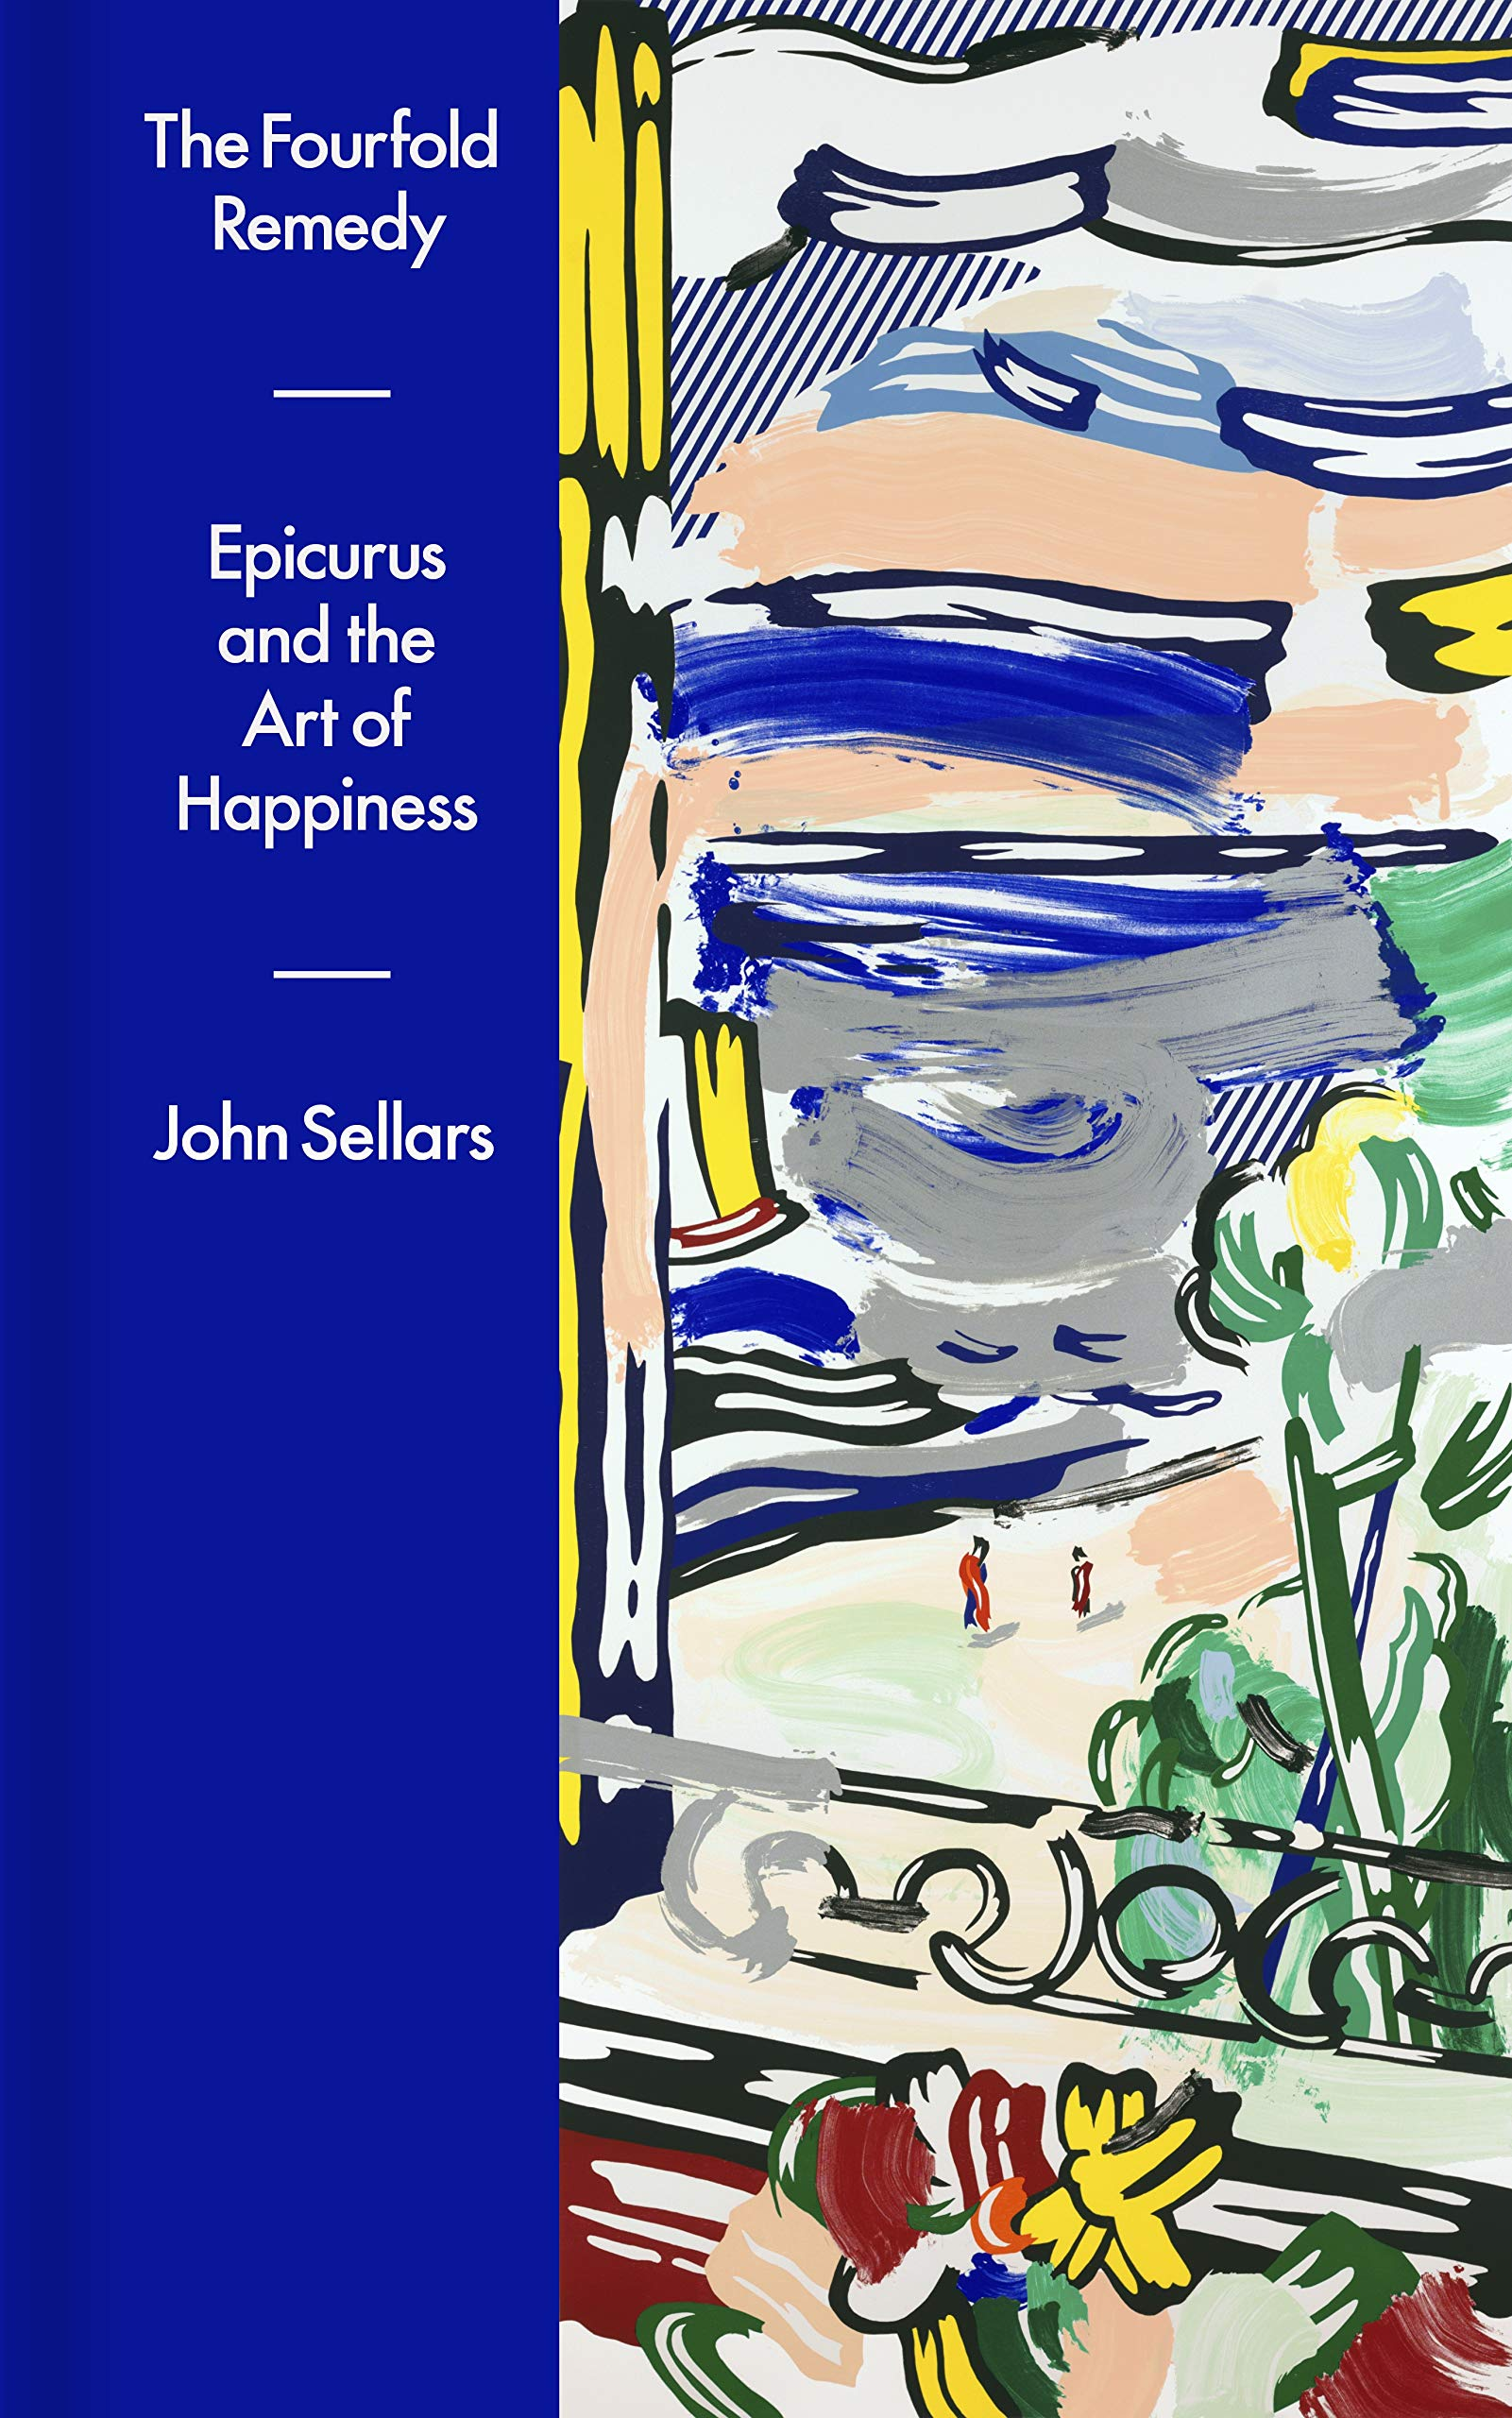 John Sellars: The Fourfold Remedy - Epicurus and the Art of Happiness